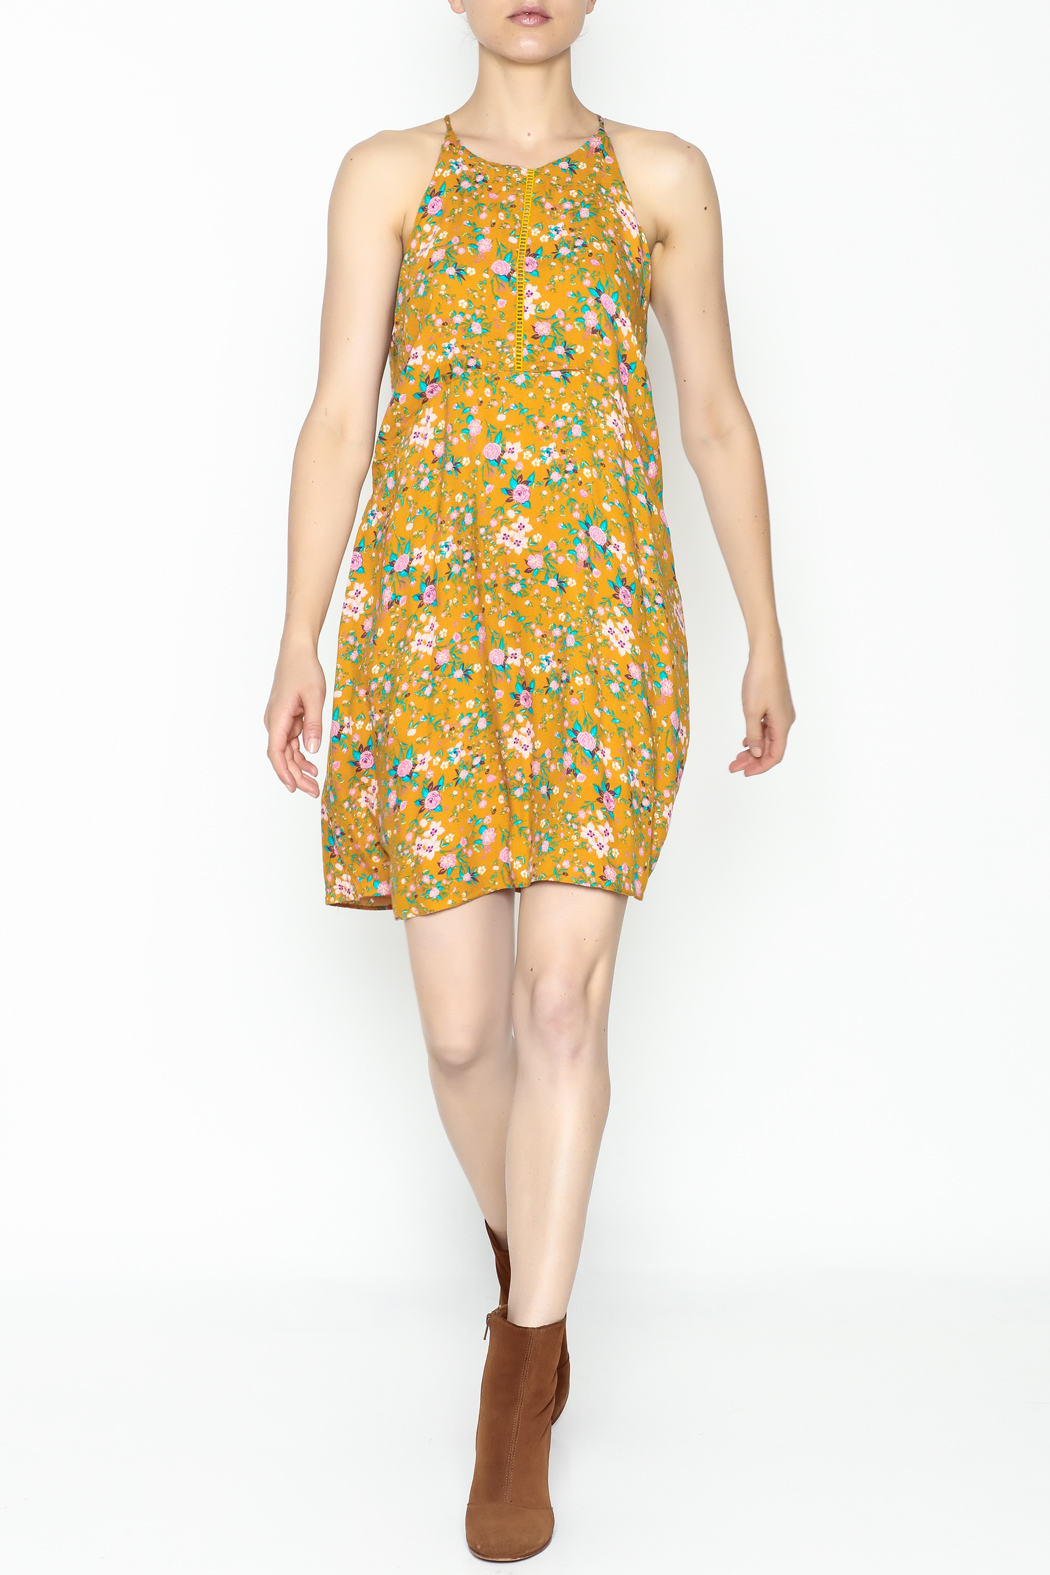 Everly Yellow Floral Shift Dress - Side Cropped Image